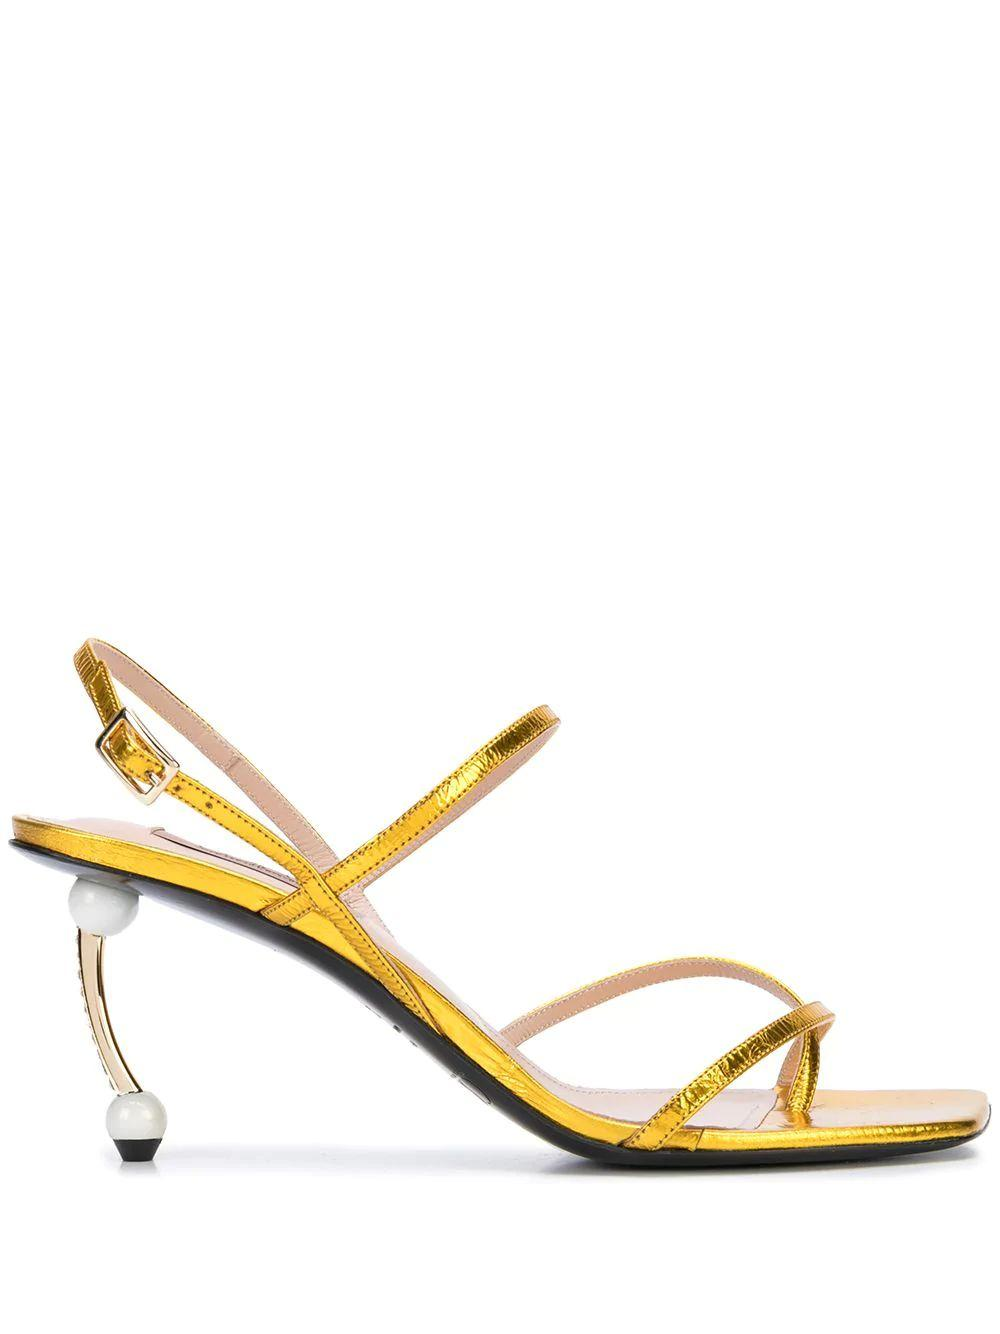 Square Toe Sandal With Pearl Heel